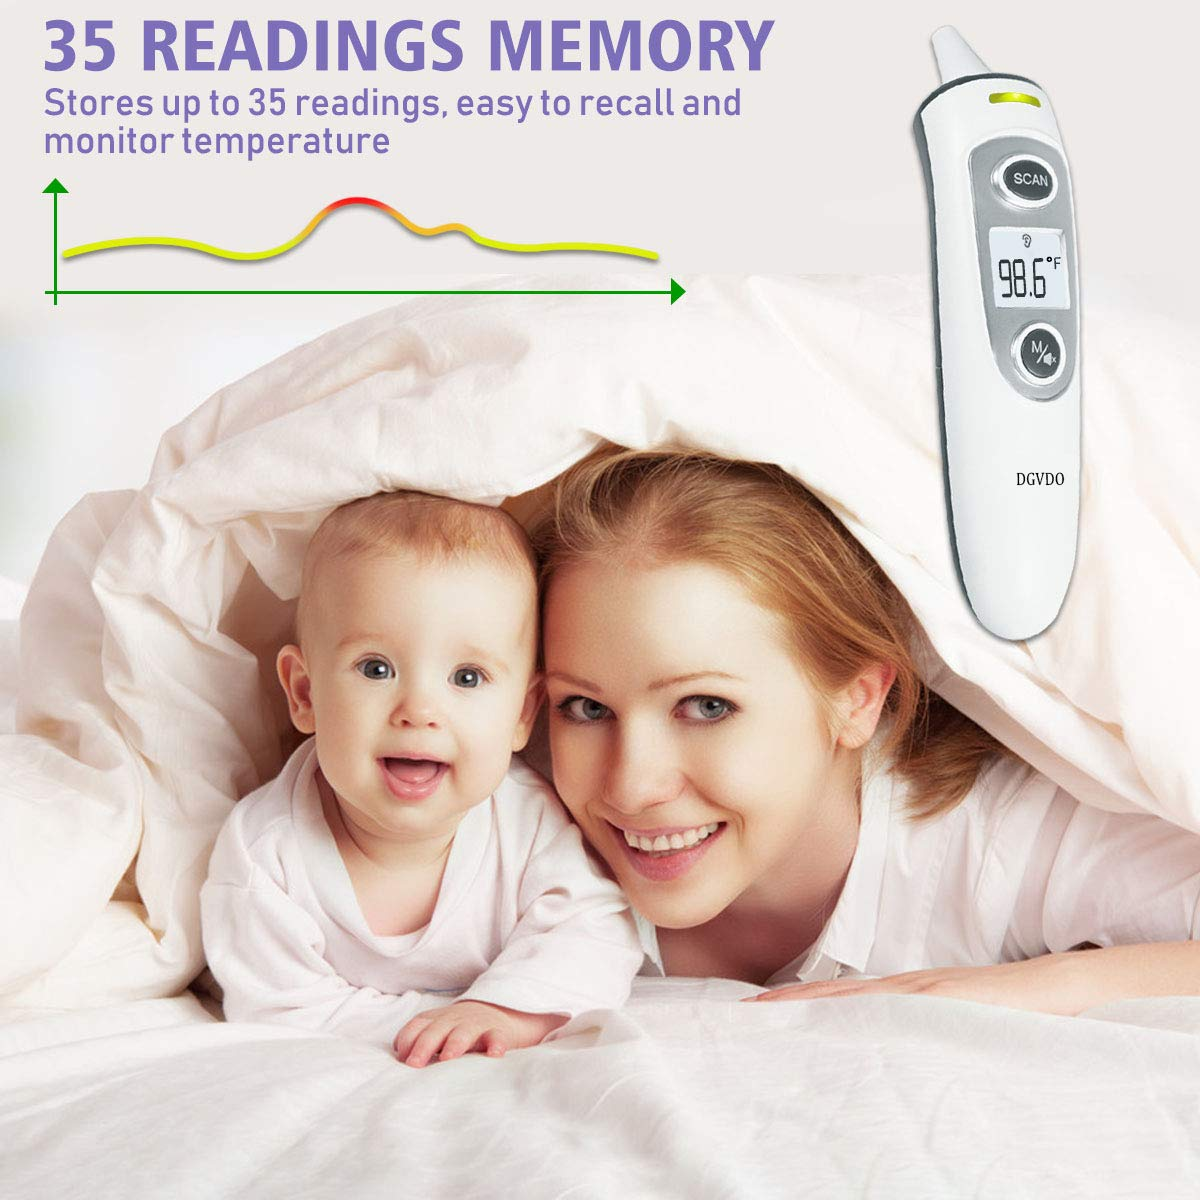 Kids and Adults Medical Forehead and Ear Thermometers for Fever Digital Infrared Non-Contact Thermometer for Baby Fever Alarm and Memory Function Instant Accurate Reading